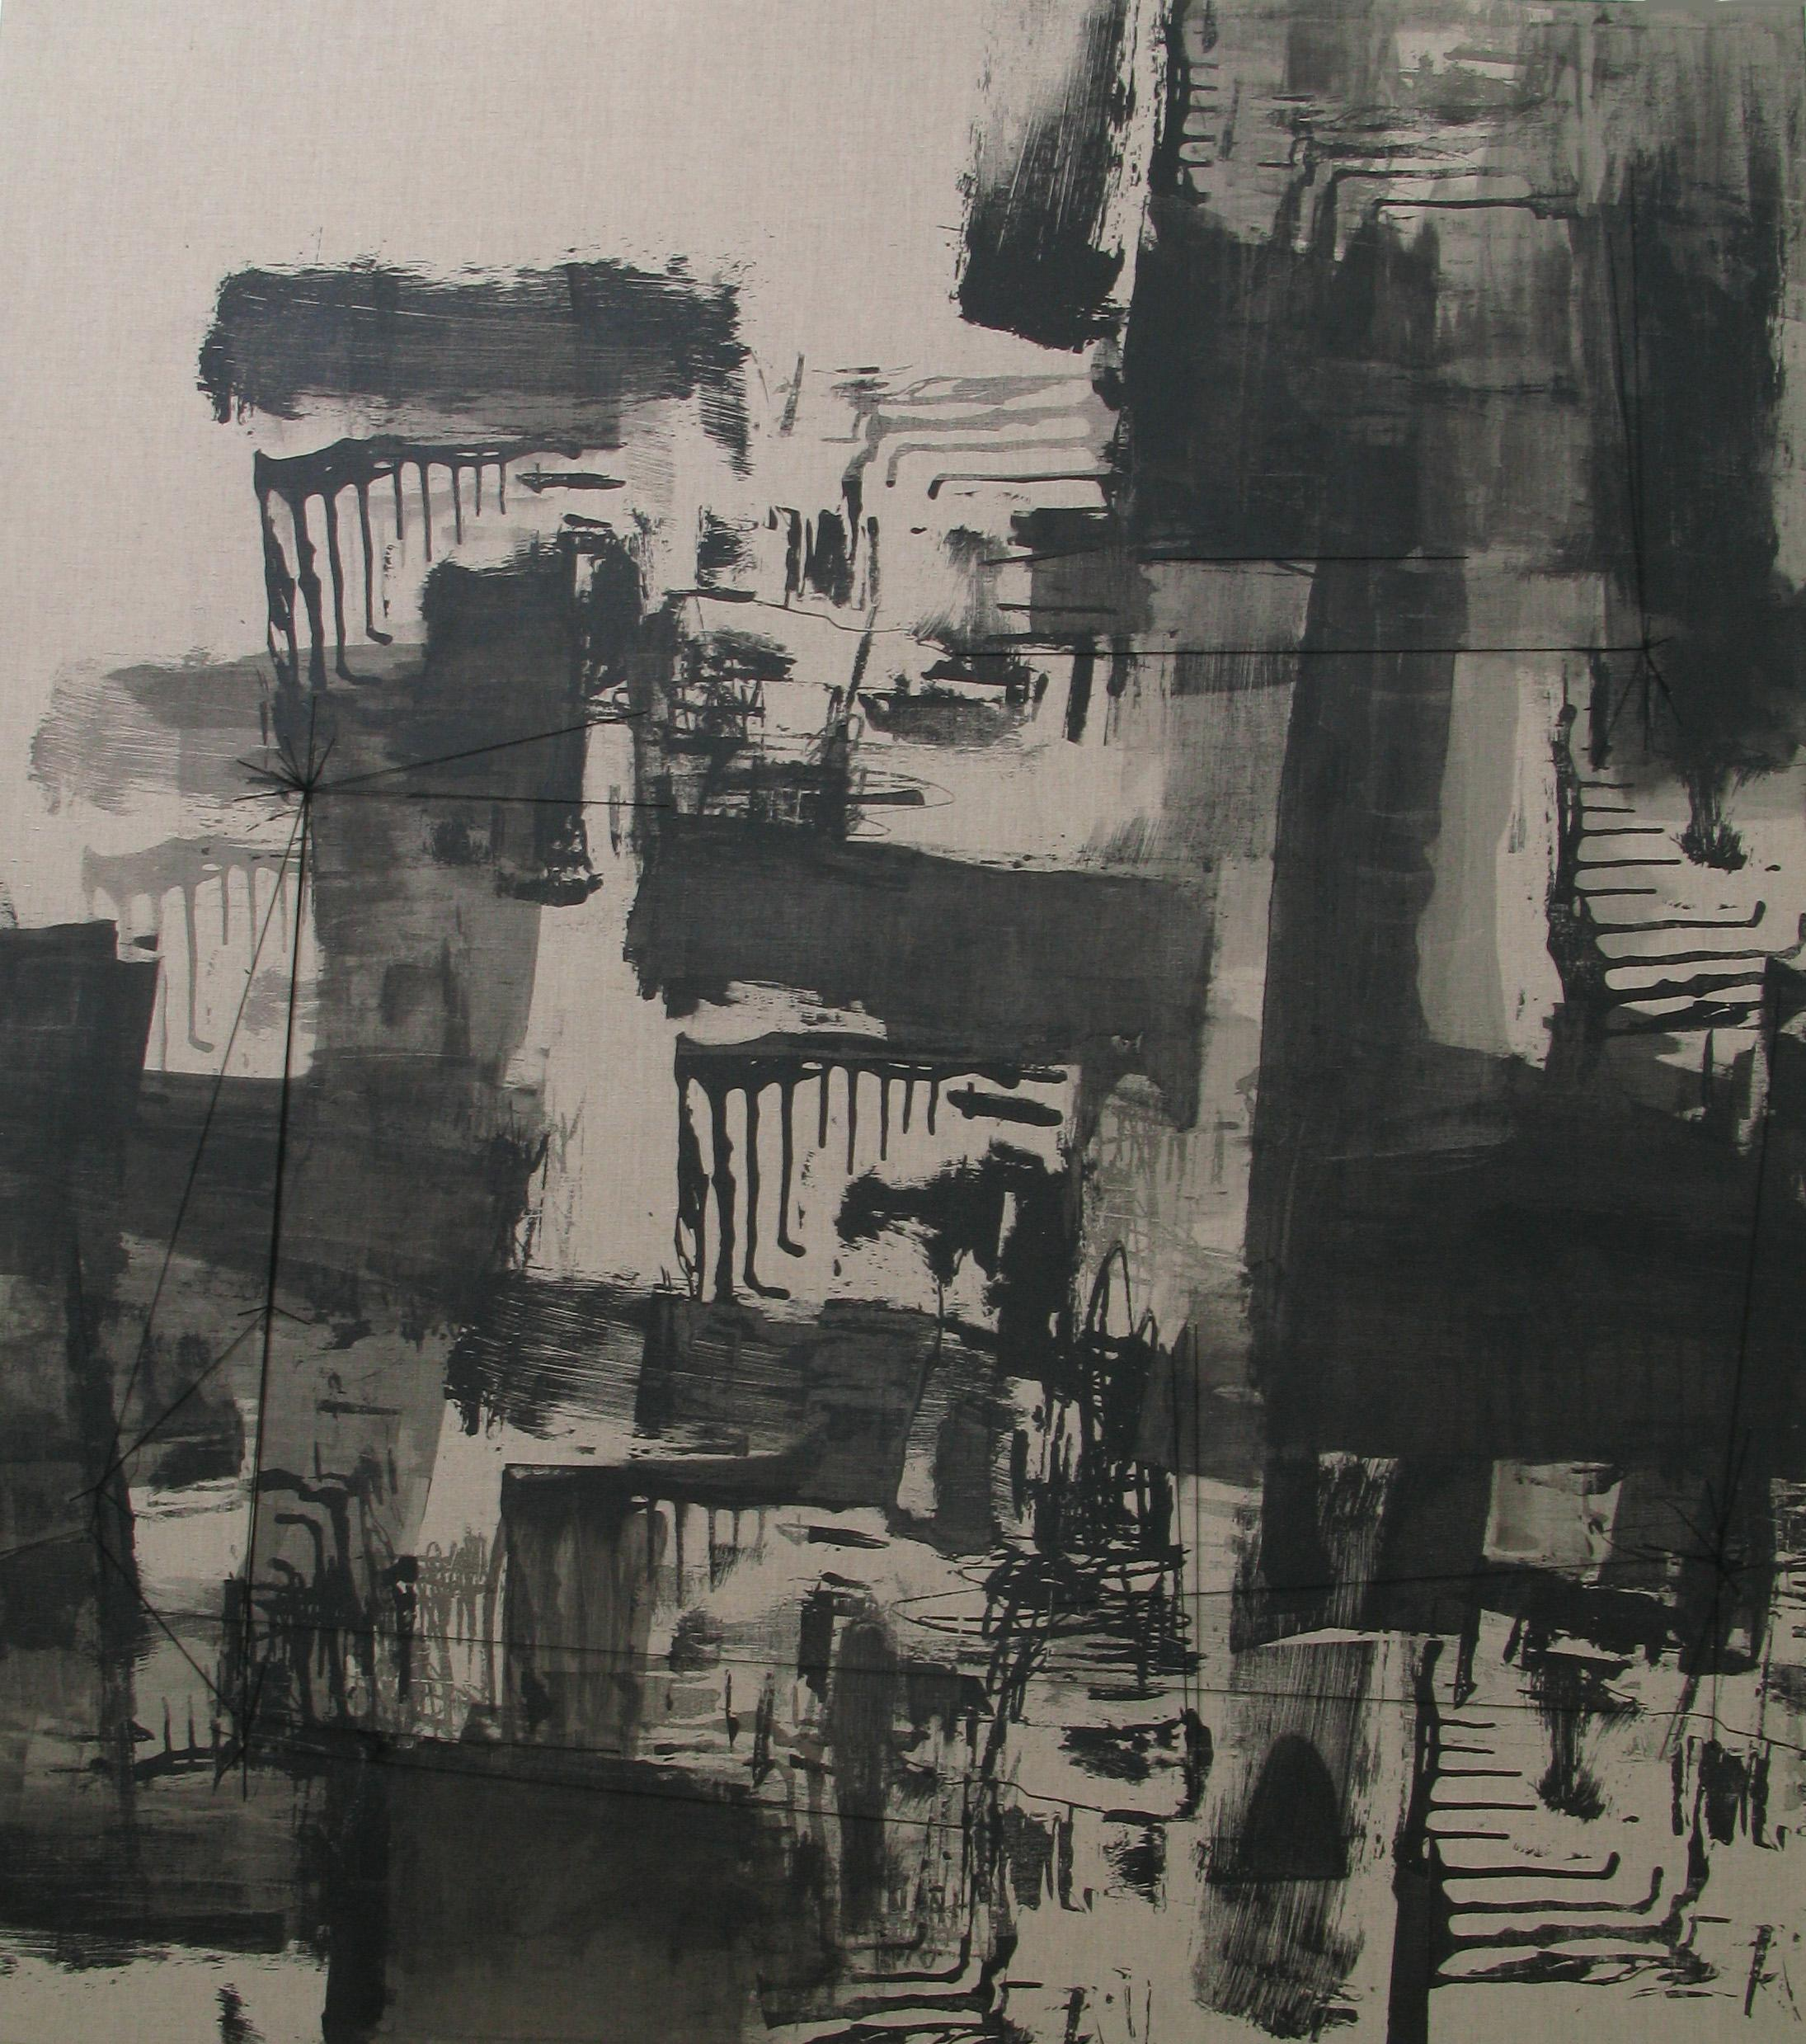 Impossibility of Repetition , 165 x 148 cm, silkscreen ink and thread on linen, 2007, Private Collection  UOB Painting of the Year, Highly Commended Entry, Abstract category, 2007